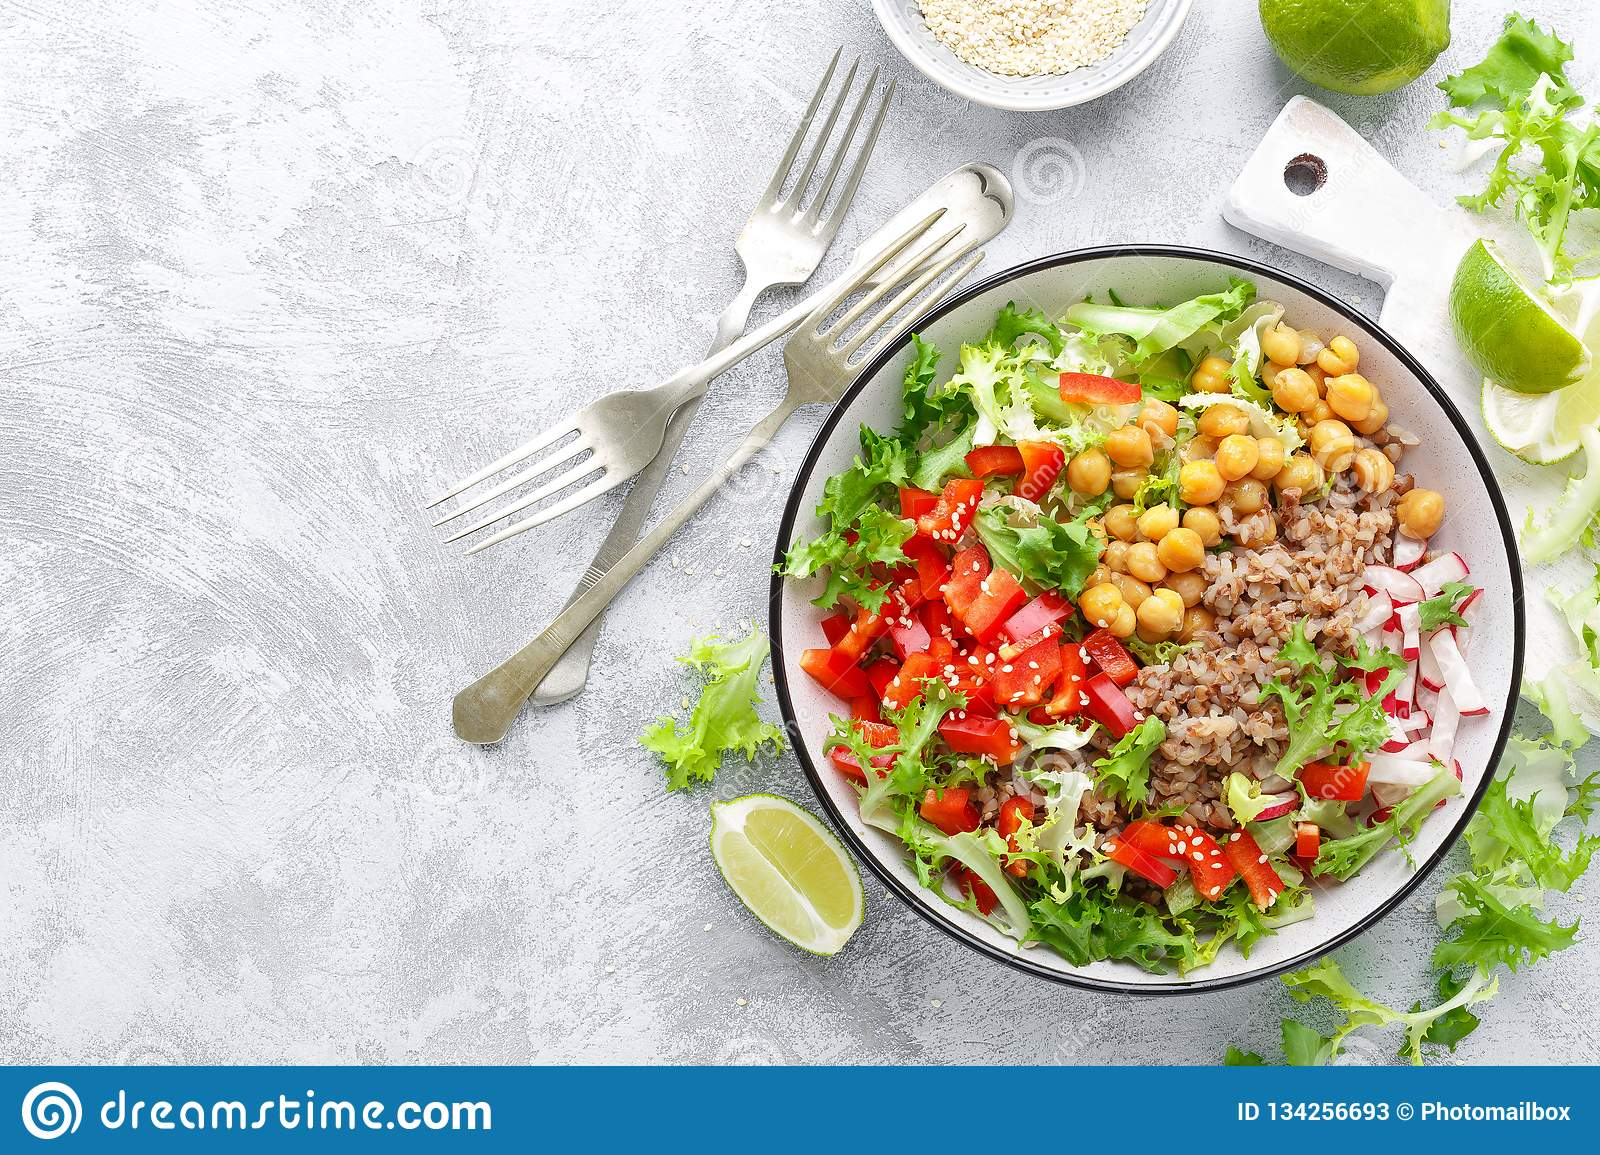 Healthy and delicious bowl with buckwheat and salad of chickpea, fresh pepper and lettuce leaves. Dietary balanced plant-based foo